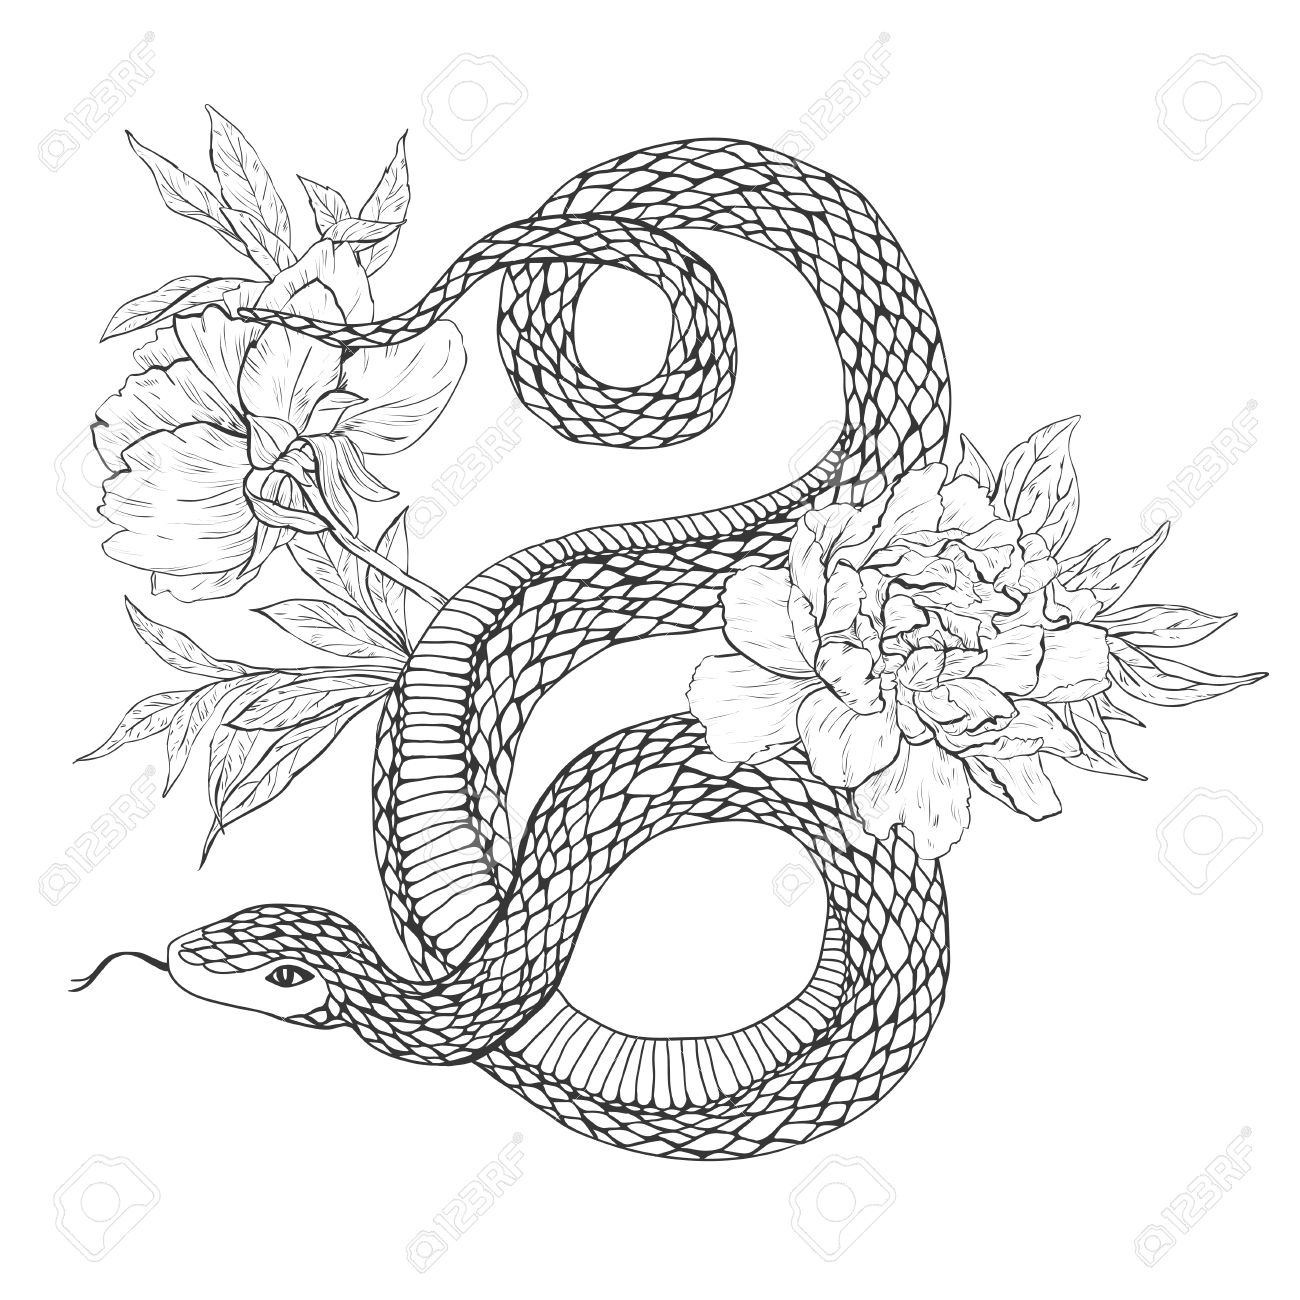 Snakes And Flowers Tattoo Art Coloring Books Vintage Illustration Isolated On White Background